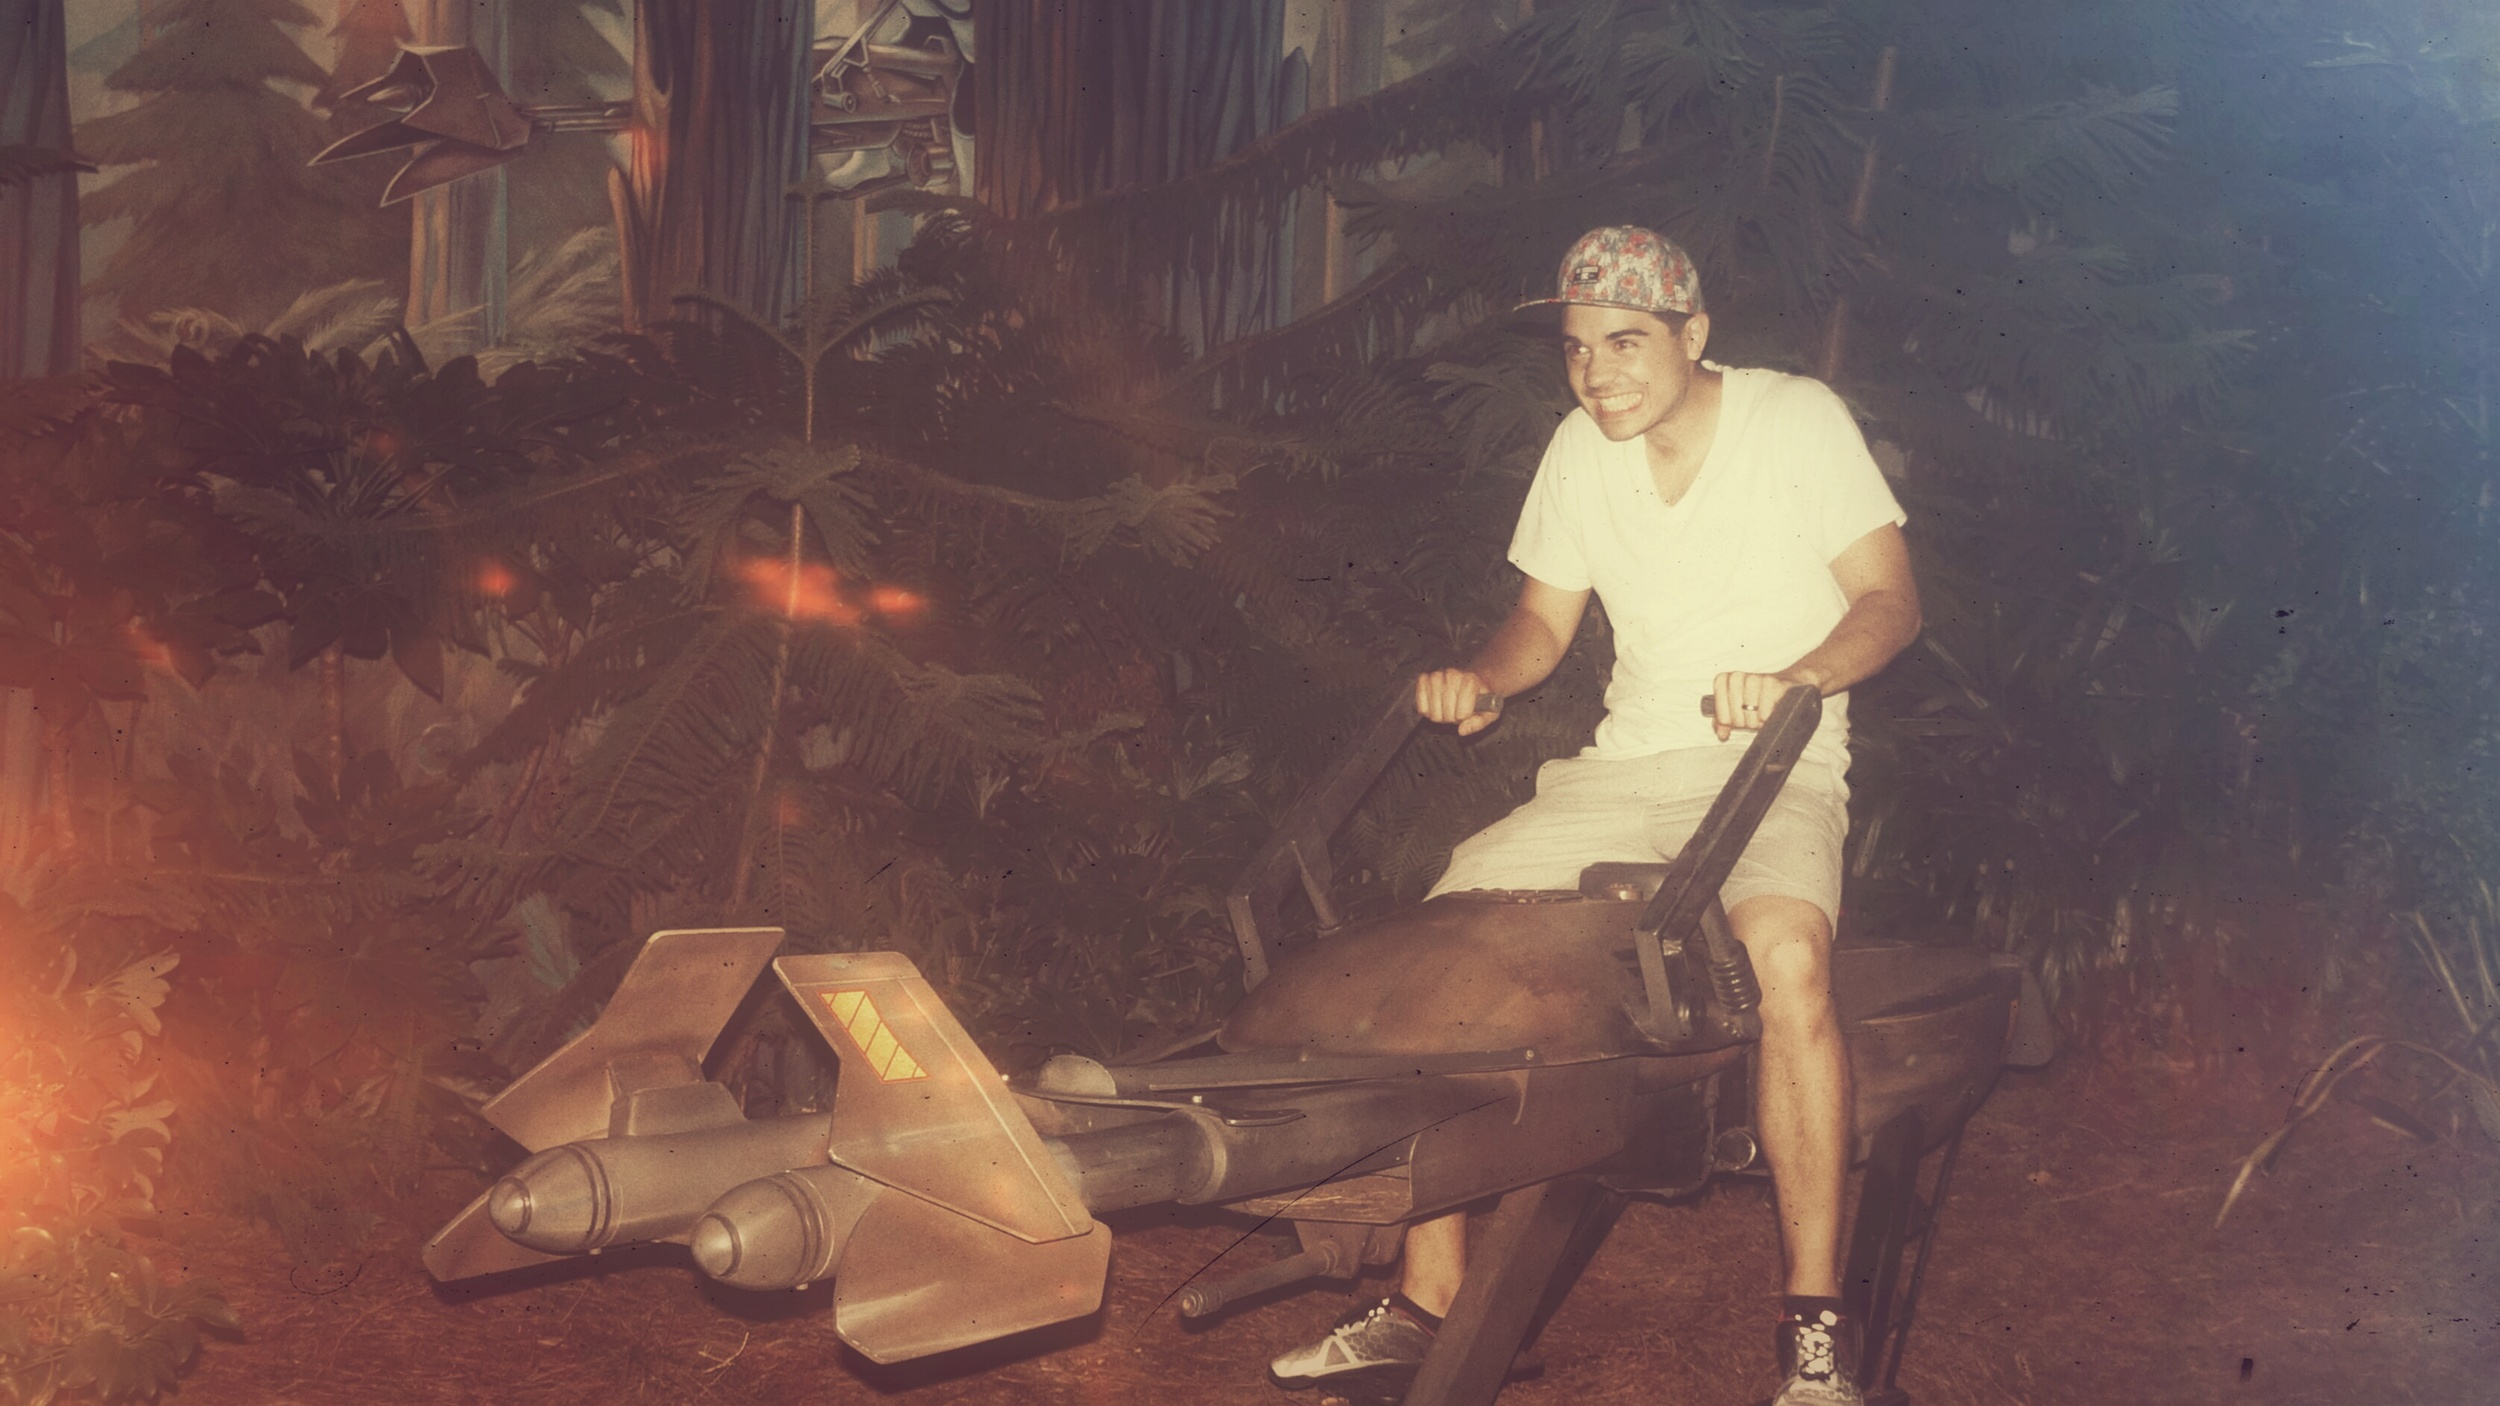 Riley (me) on a speeder bike